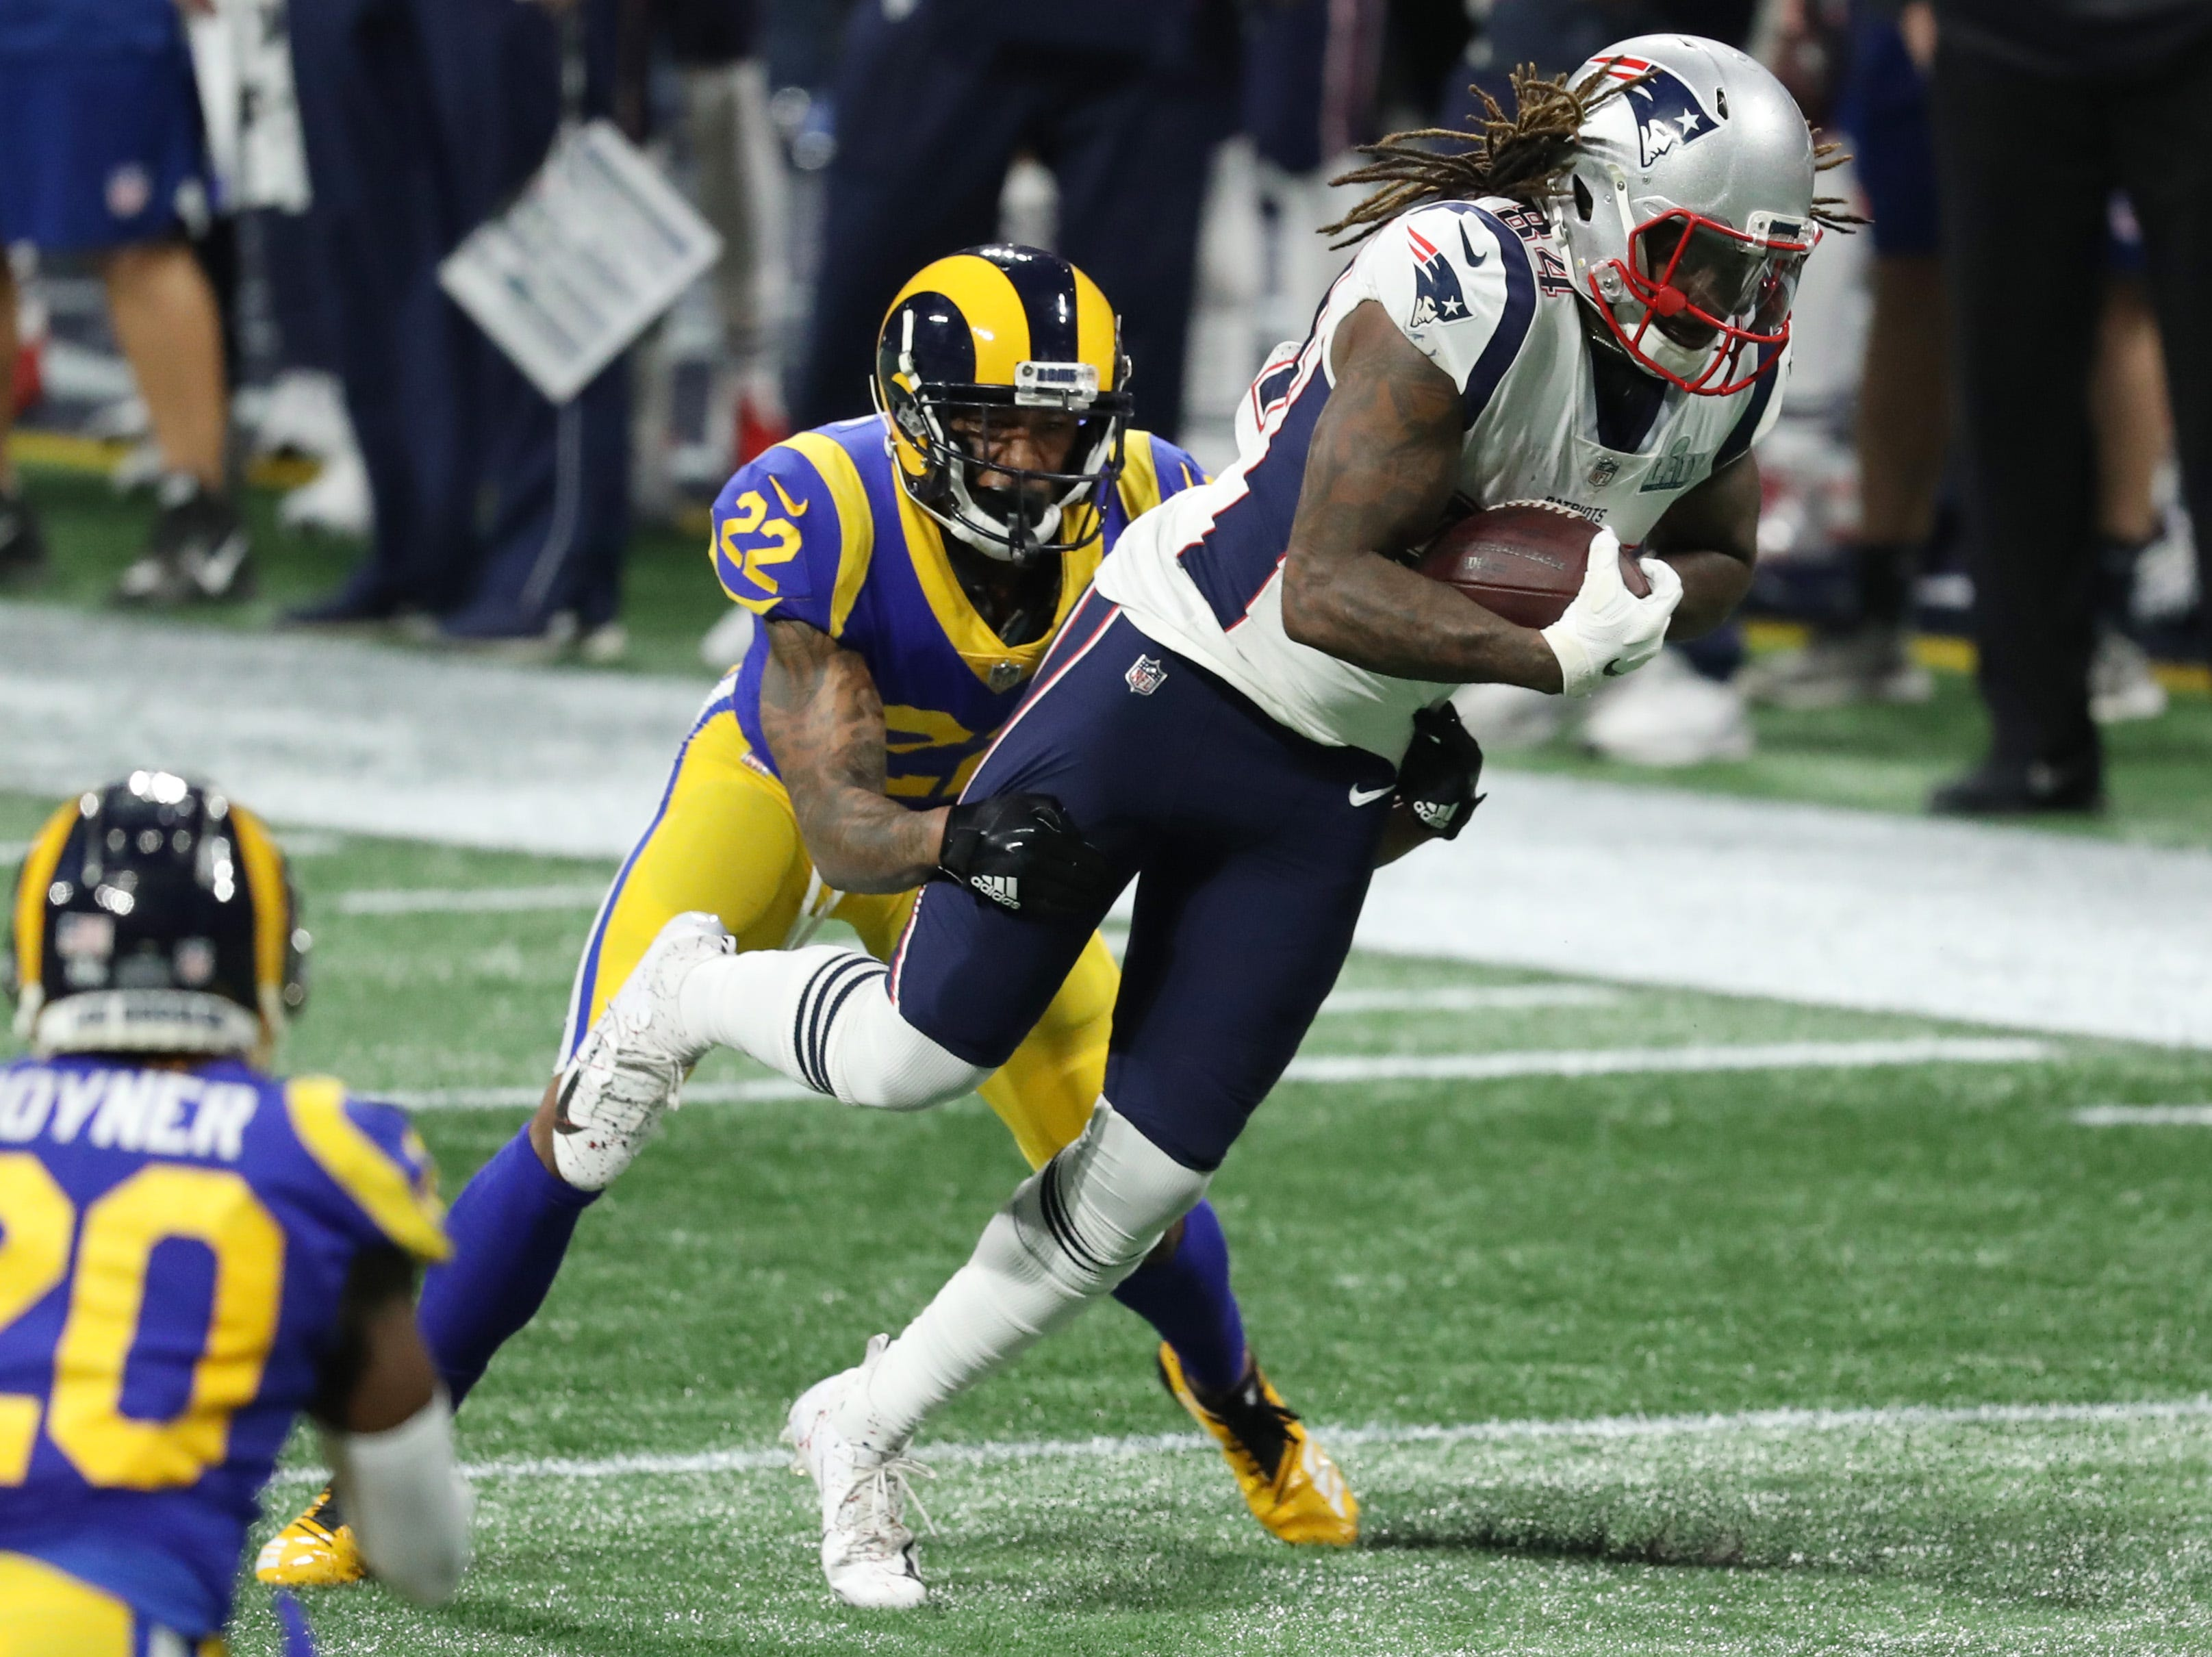 New England Patriots wide receiver Cordarrelle Patterson (84) tries to break the tackle Los Angeles Rams cornerback Marcus Peters (22) during the second quarter of Super Bowl LIII at Mercedes-Benz Stadium.